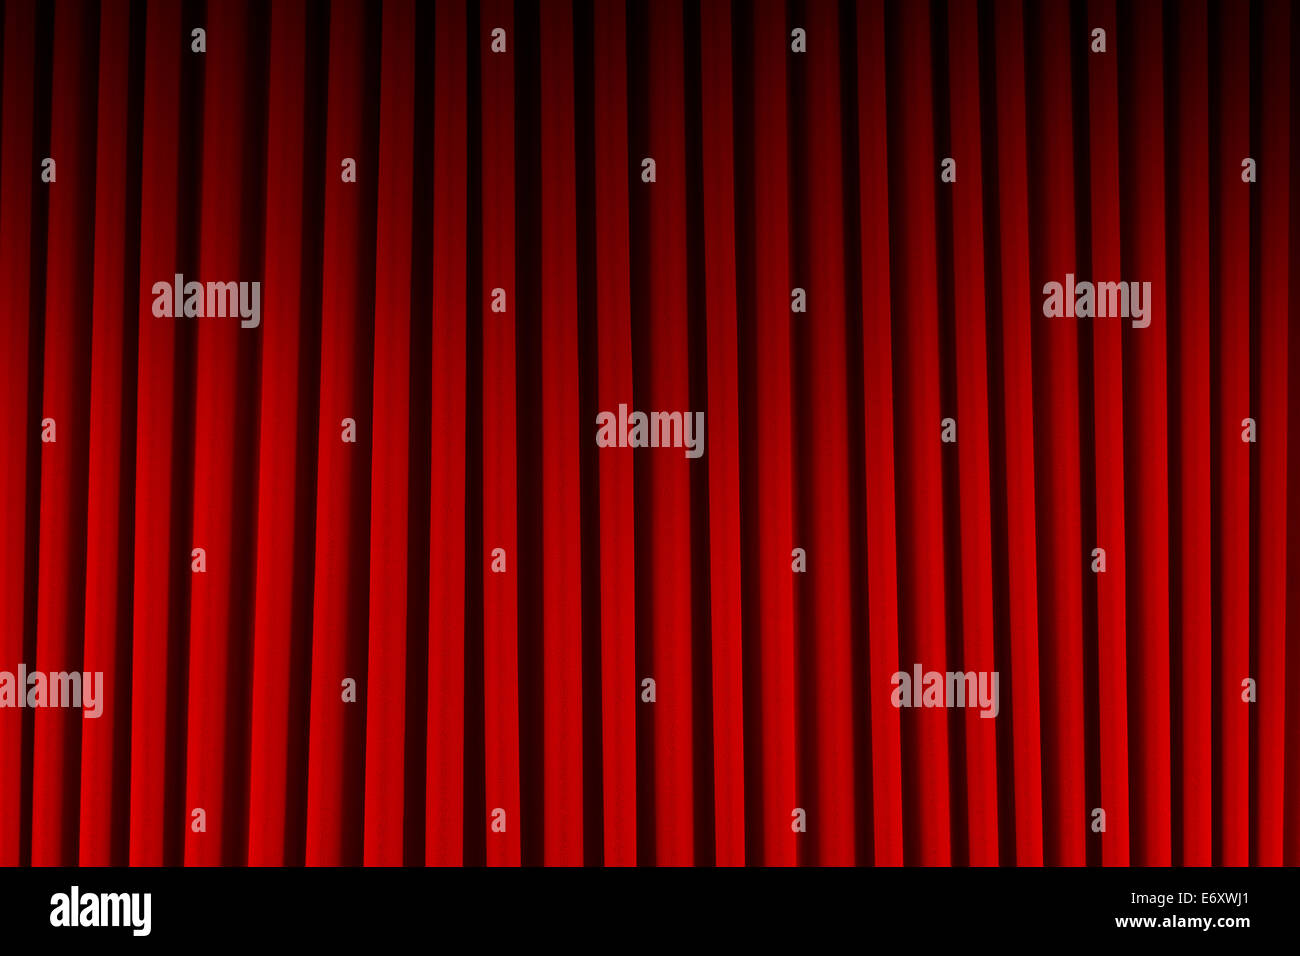 Red Velvet Stage Curtains Dim Lit Background. - Stock Image